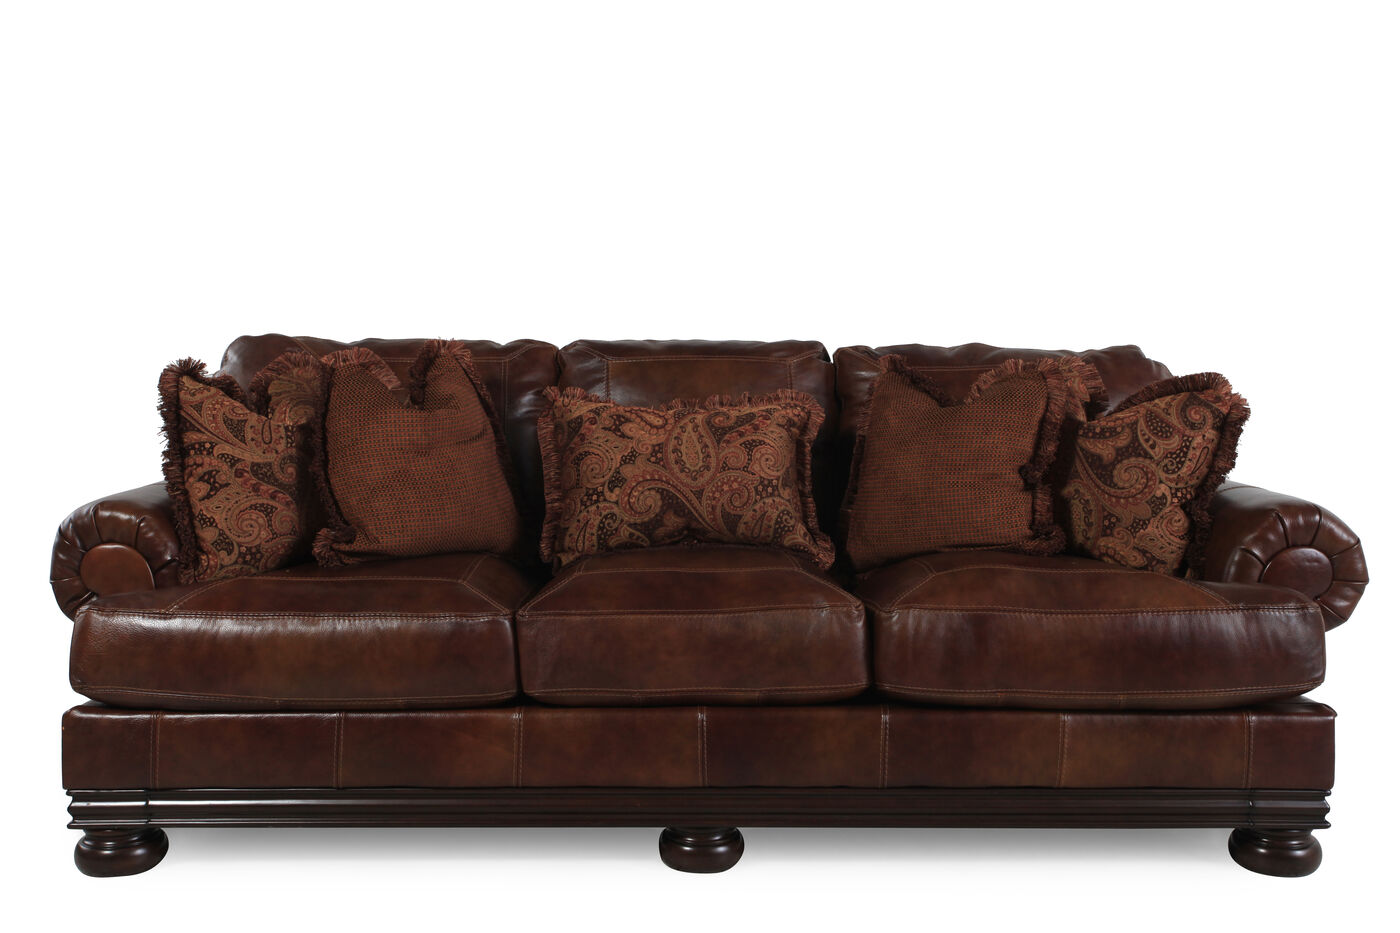 Mathis Brothers Furniture has the region's biggest selection of stylish, comfortable living room furniture sets. Shop living room furniture today! Mathis Brothers.